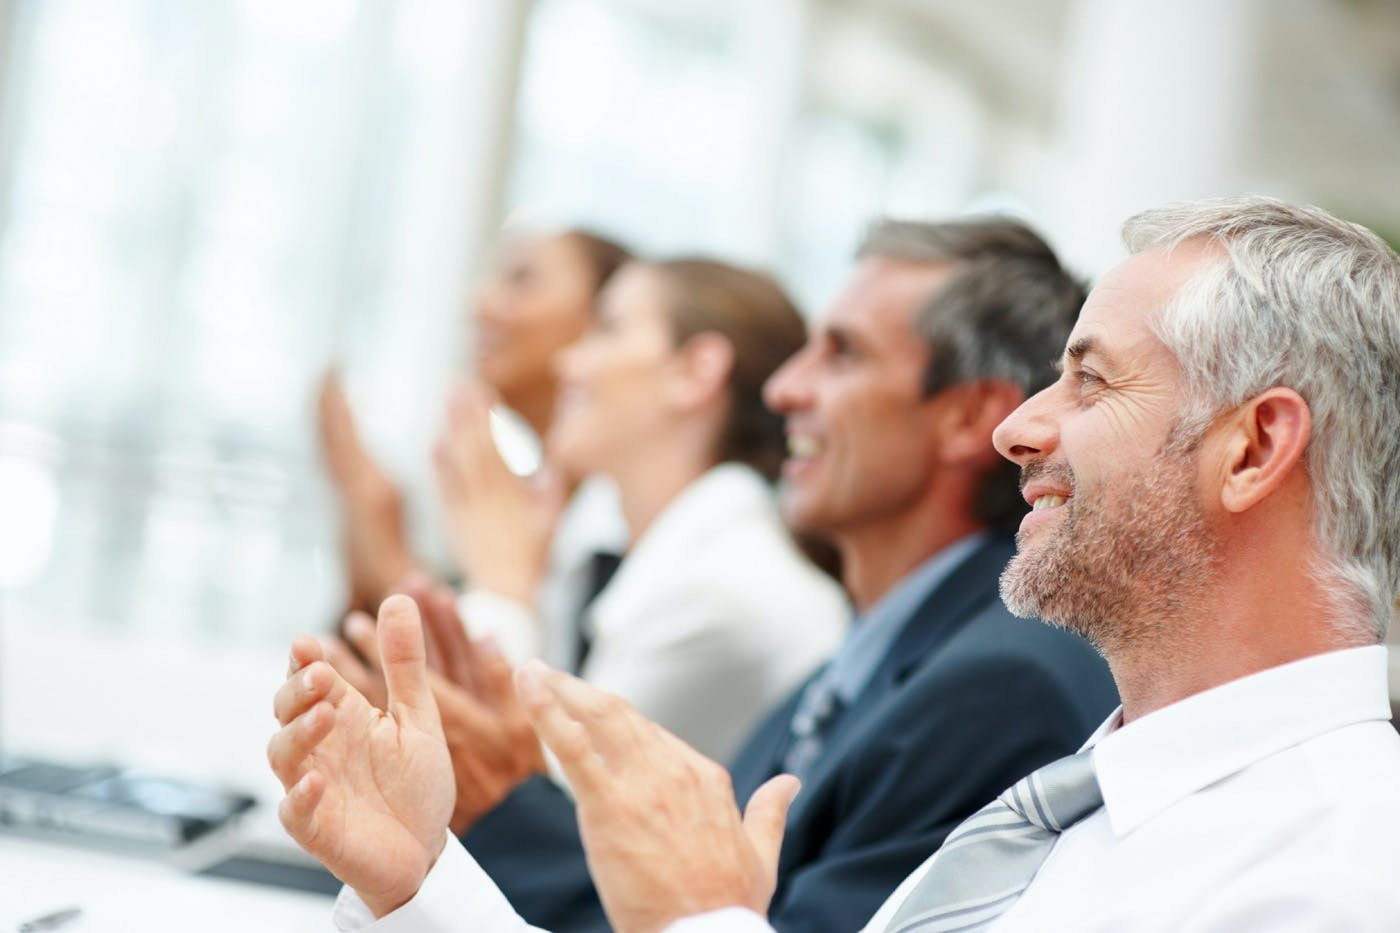 Group of happy business people clapping their hands